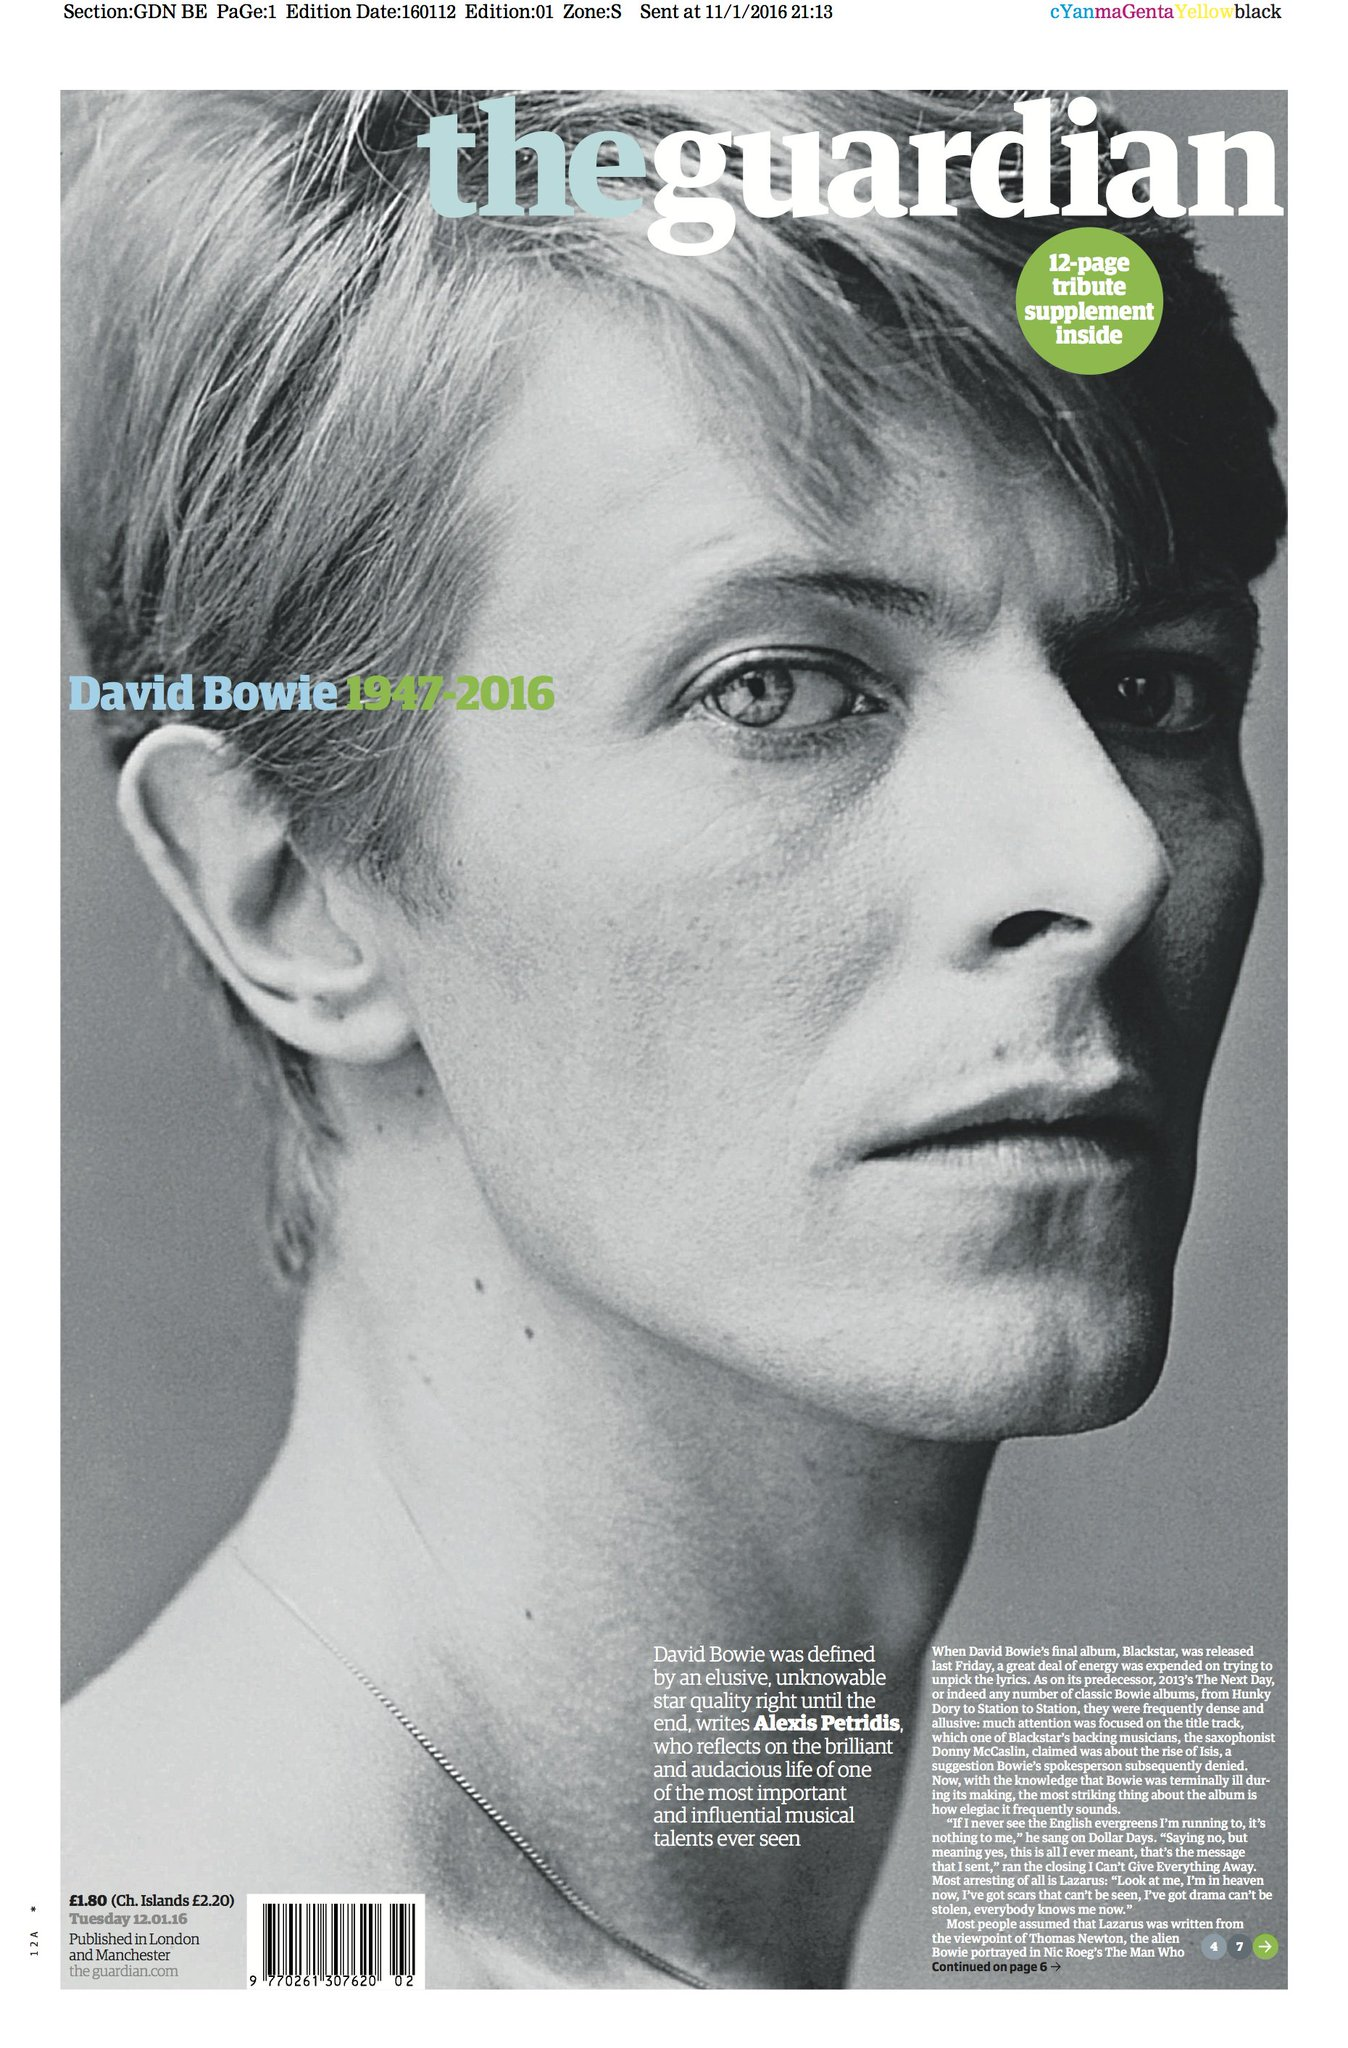 The Guardian front page, Tuesday 12 January 2016: David Bowie 1947-2016 https://t.co/jZqpfu1RPP